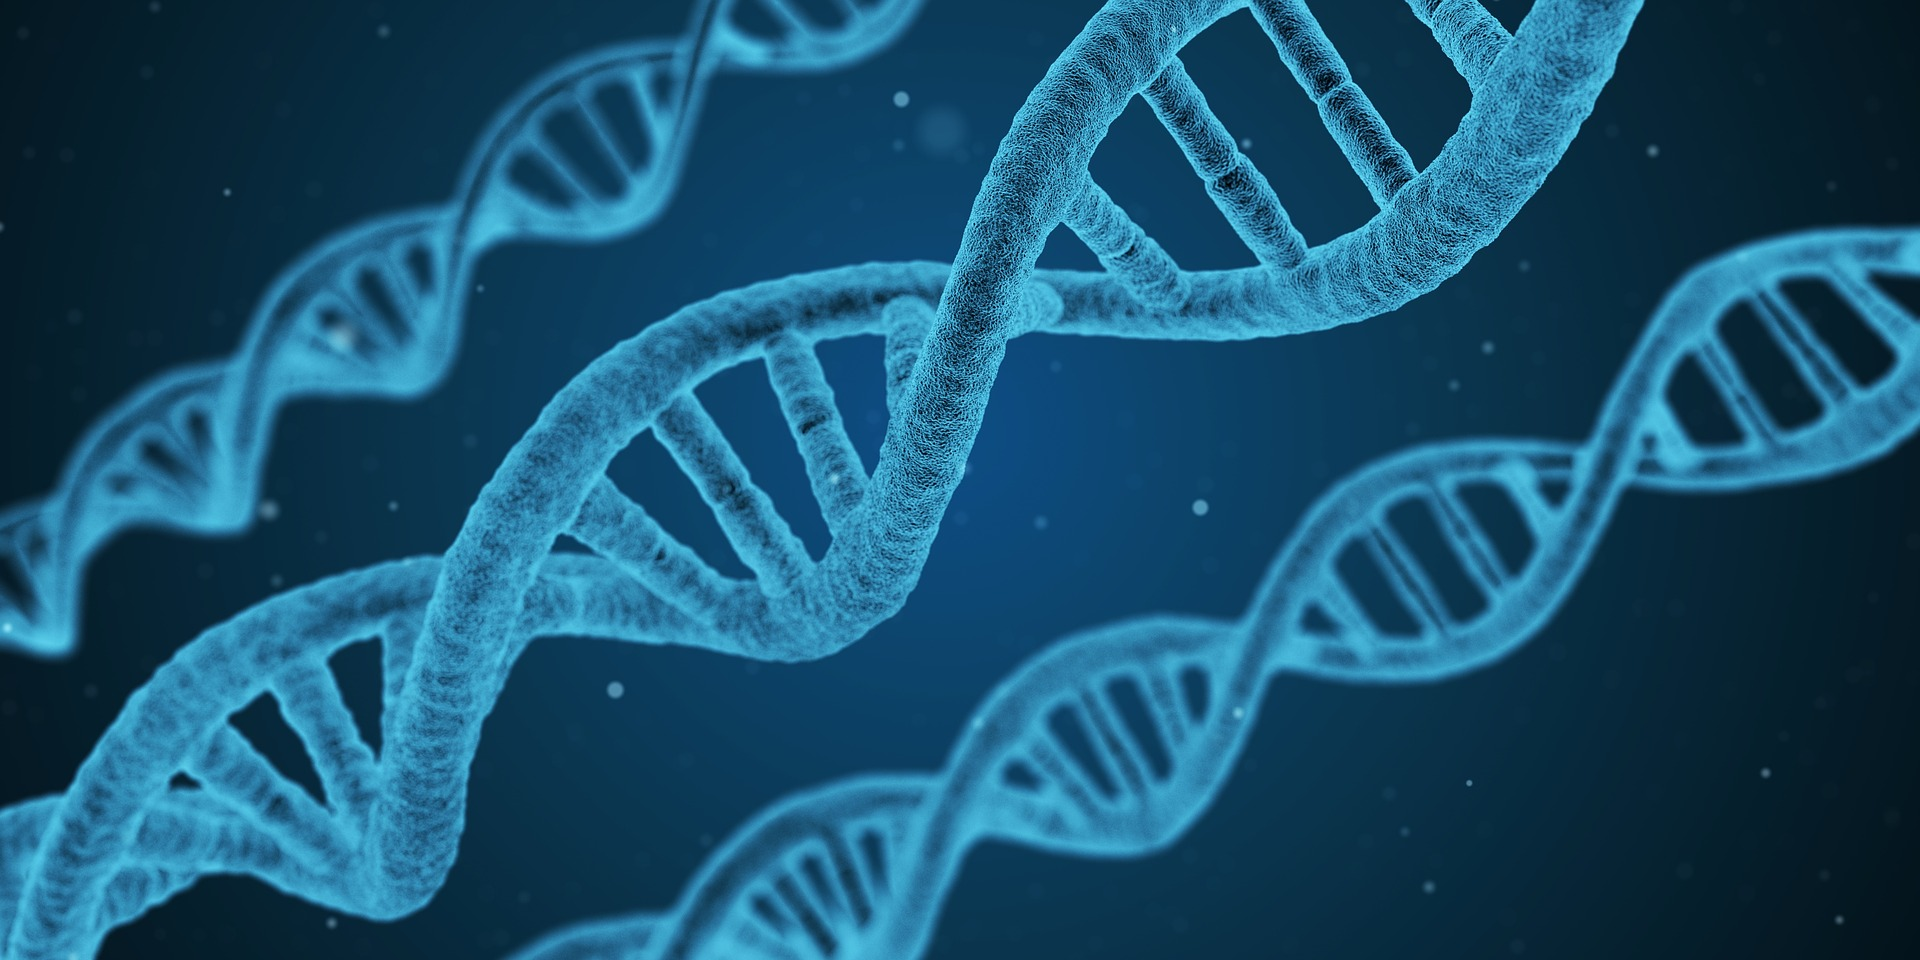 Should scientists be able to modify human genes?